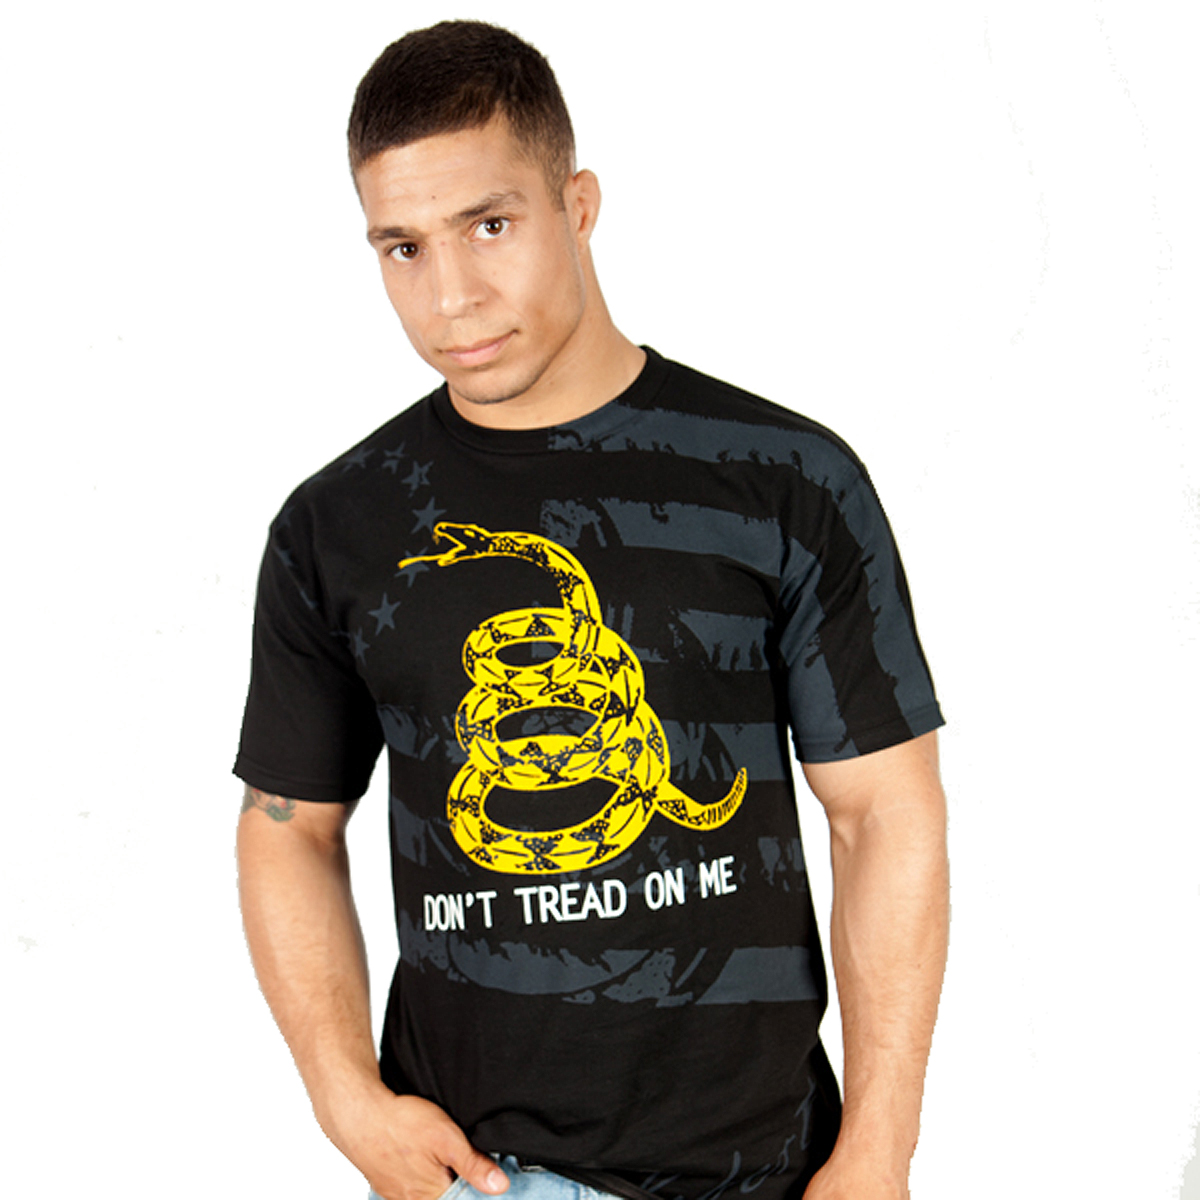 Ranger Up Don't Tread On Me T-Shirt - Black